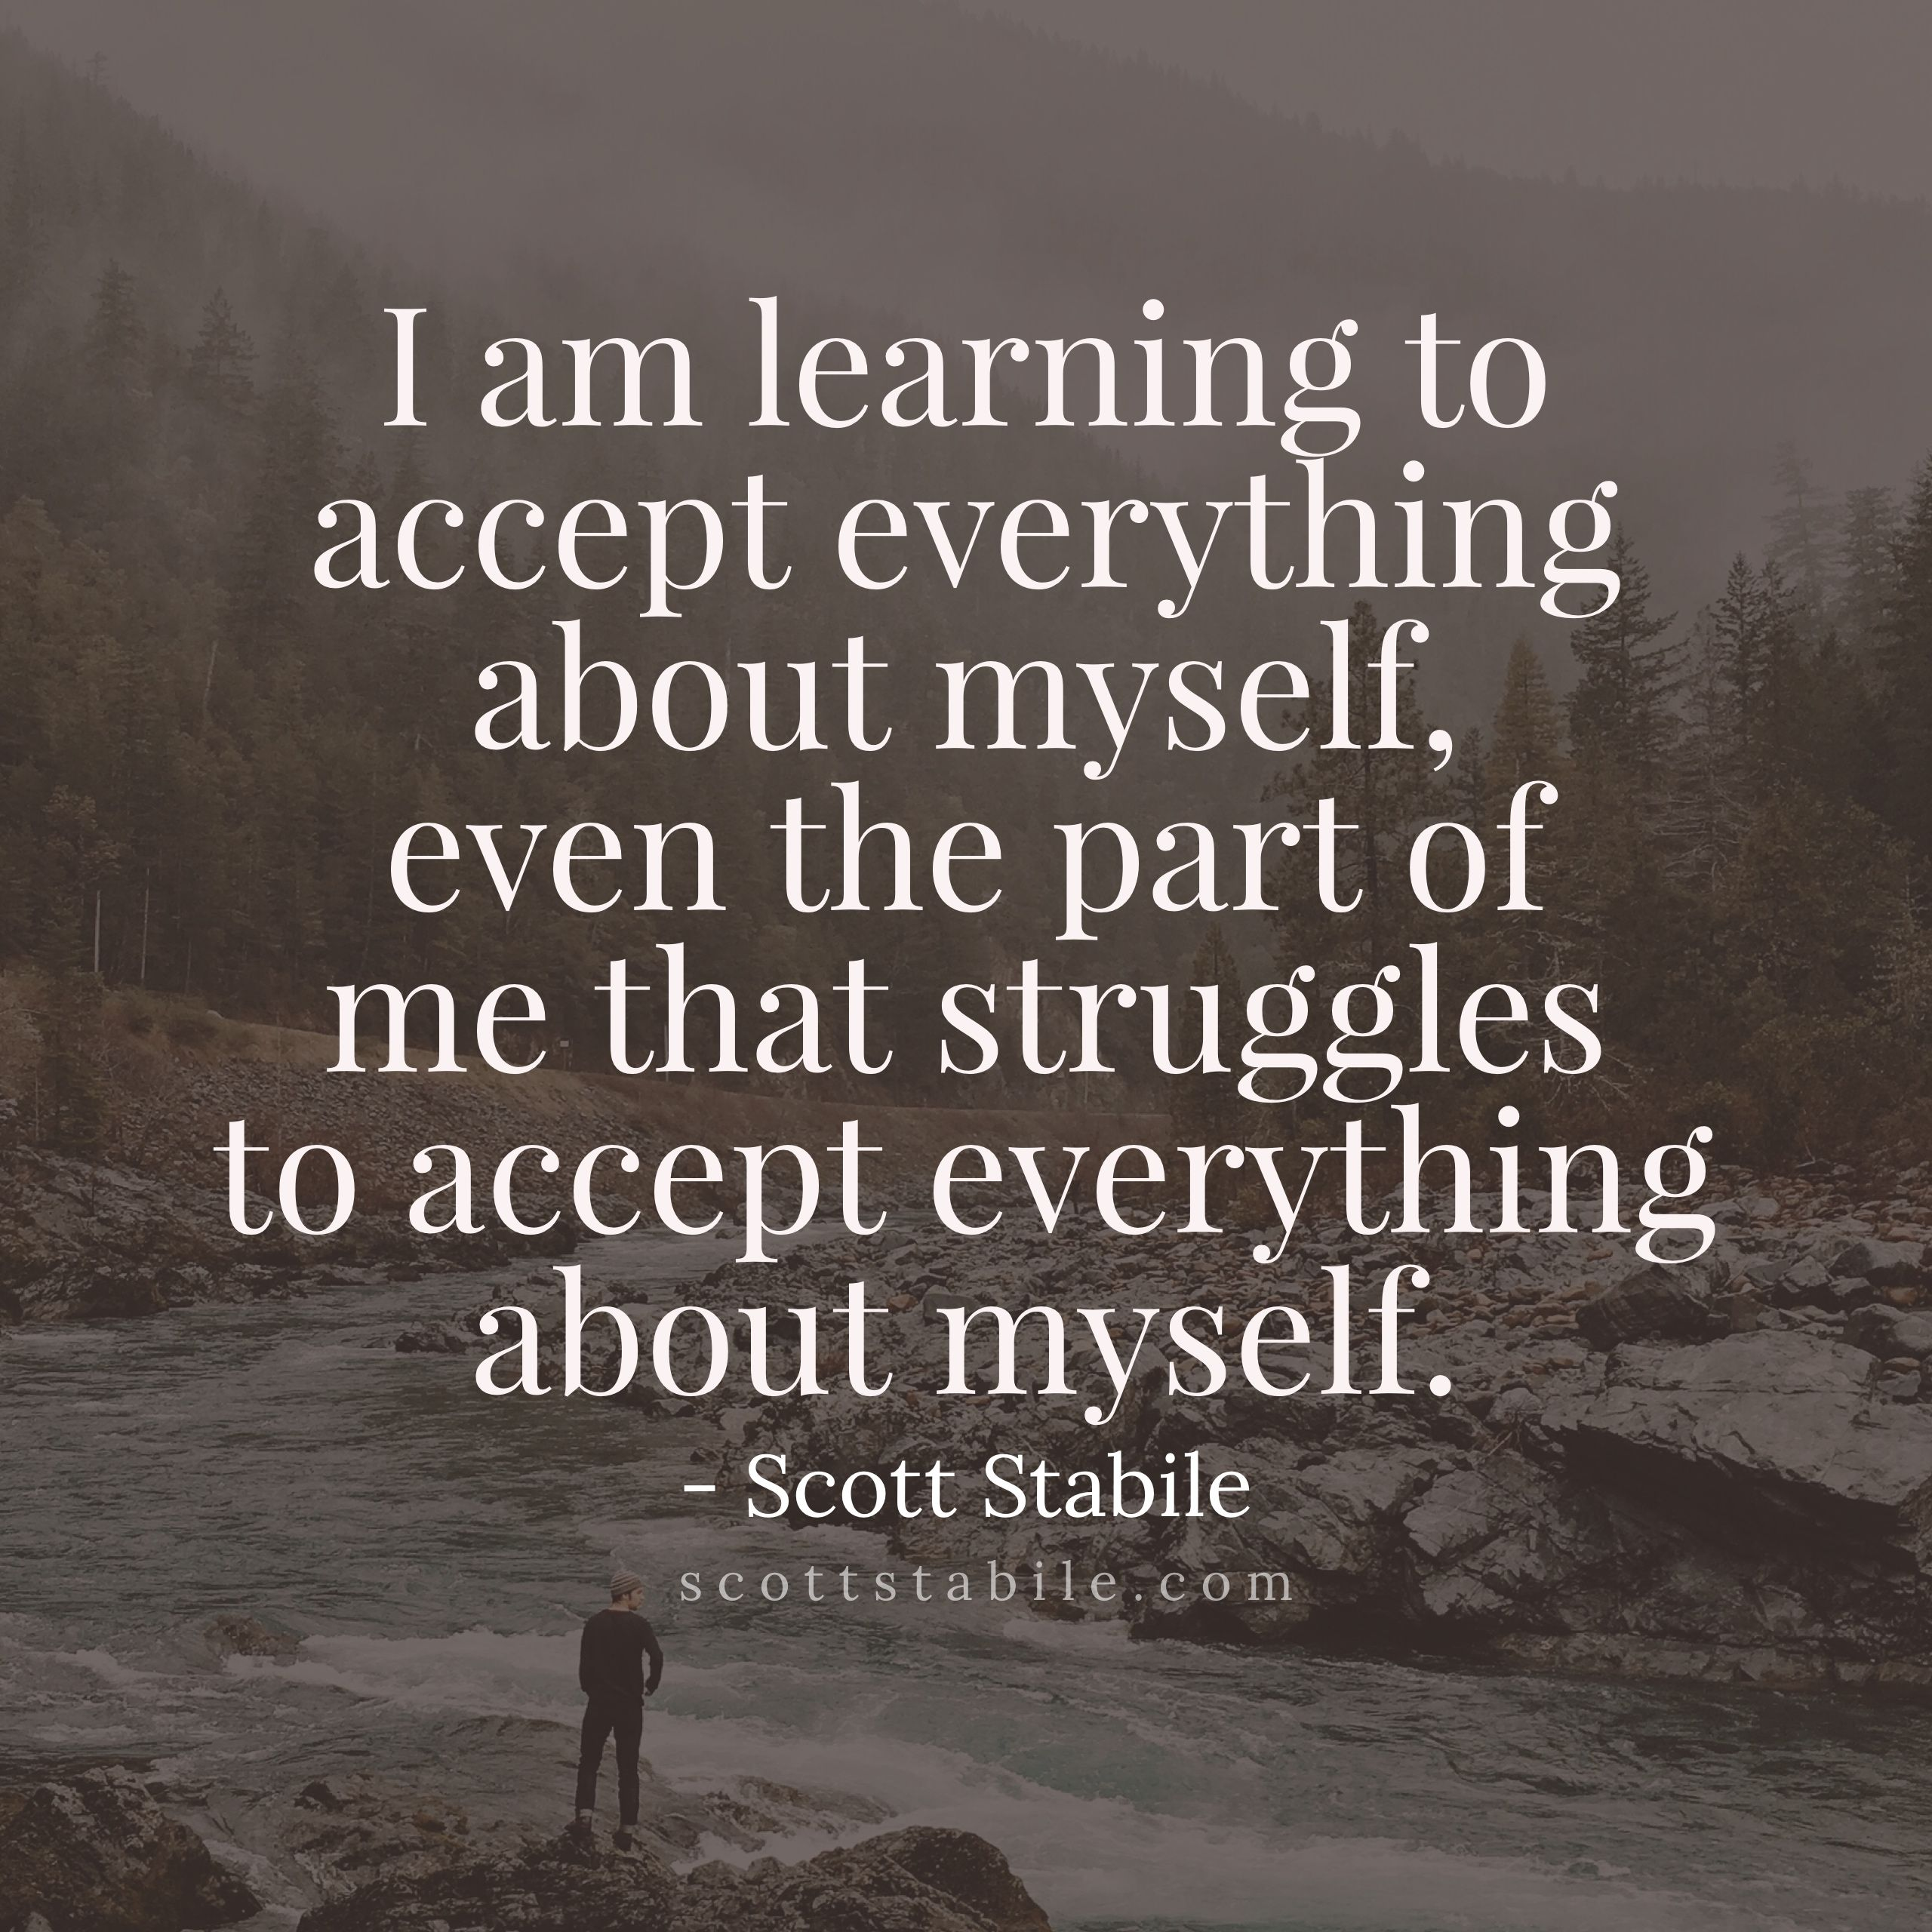 I Am Learning To Accept Everything About Myself Even The Part Of Me That Struggles To Accept Everything Abou Self Love Quotes Quotes To Live By Positive Words